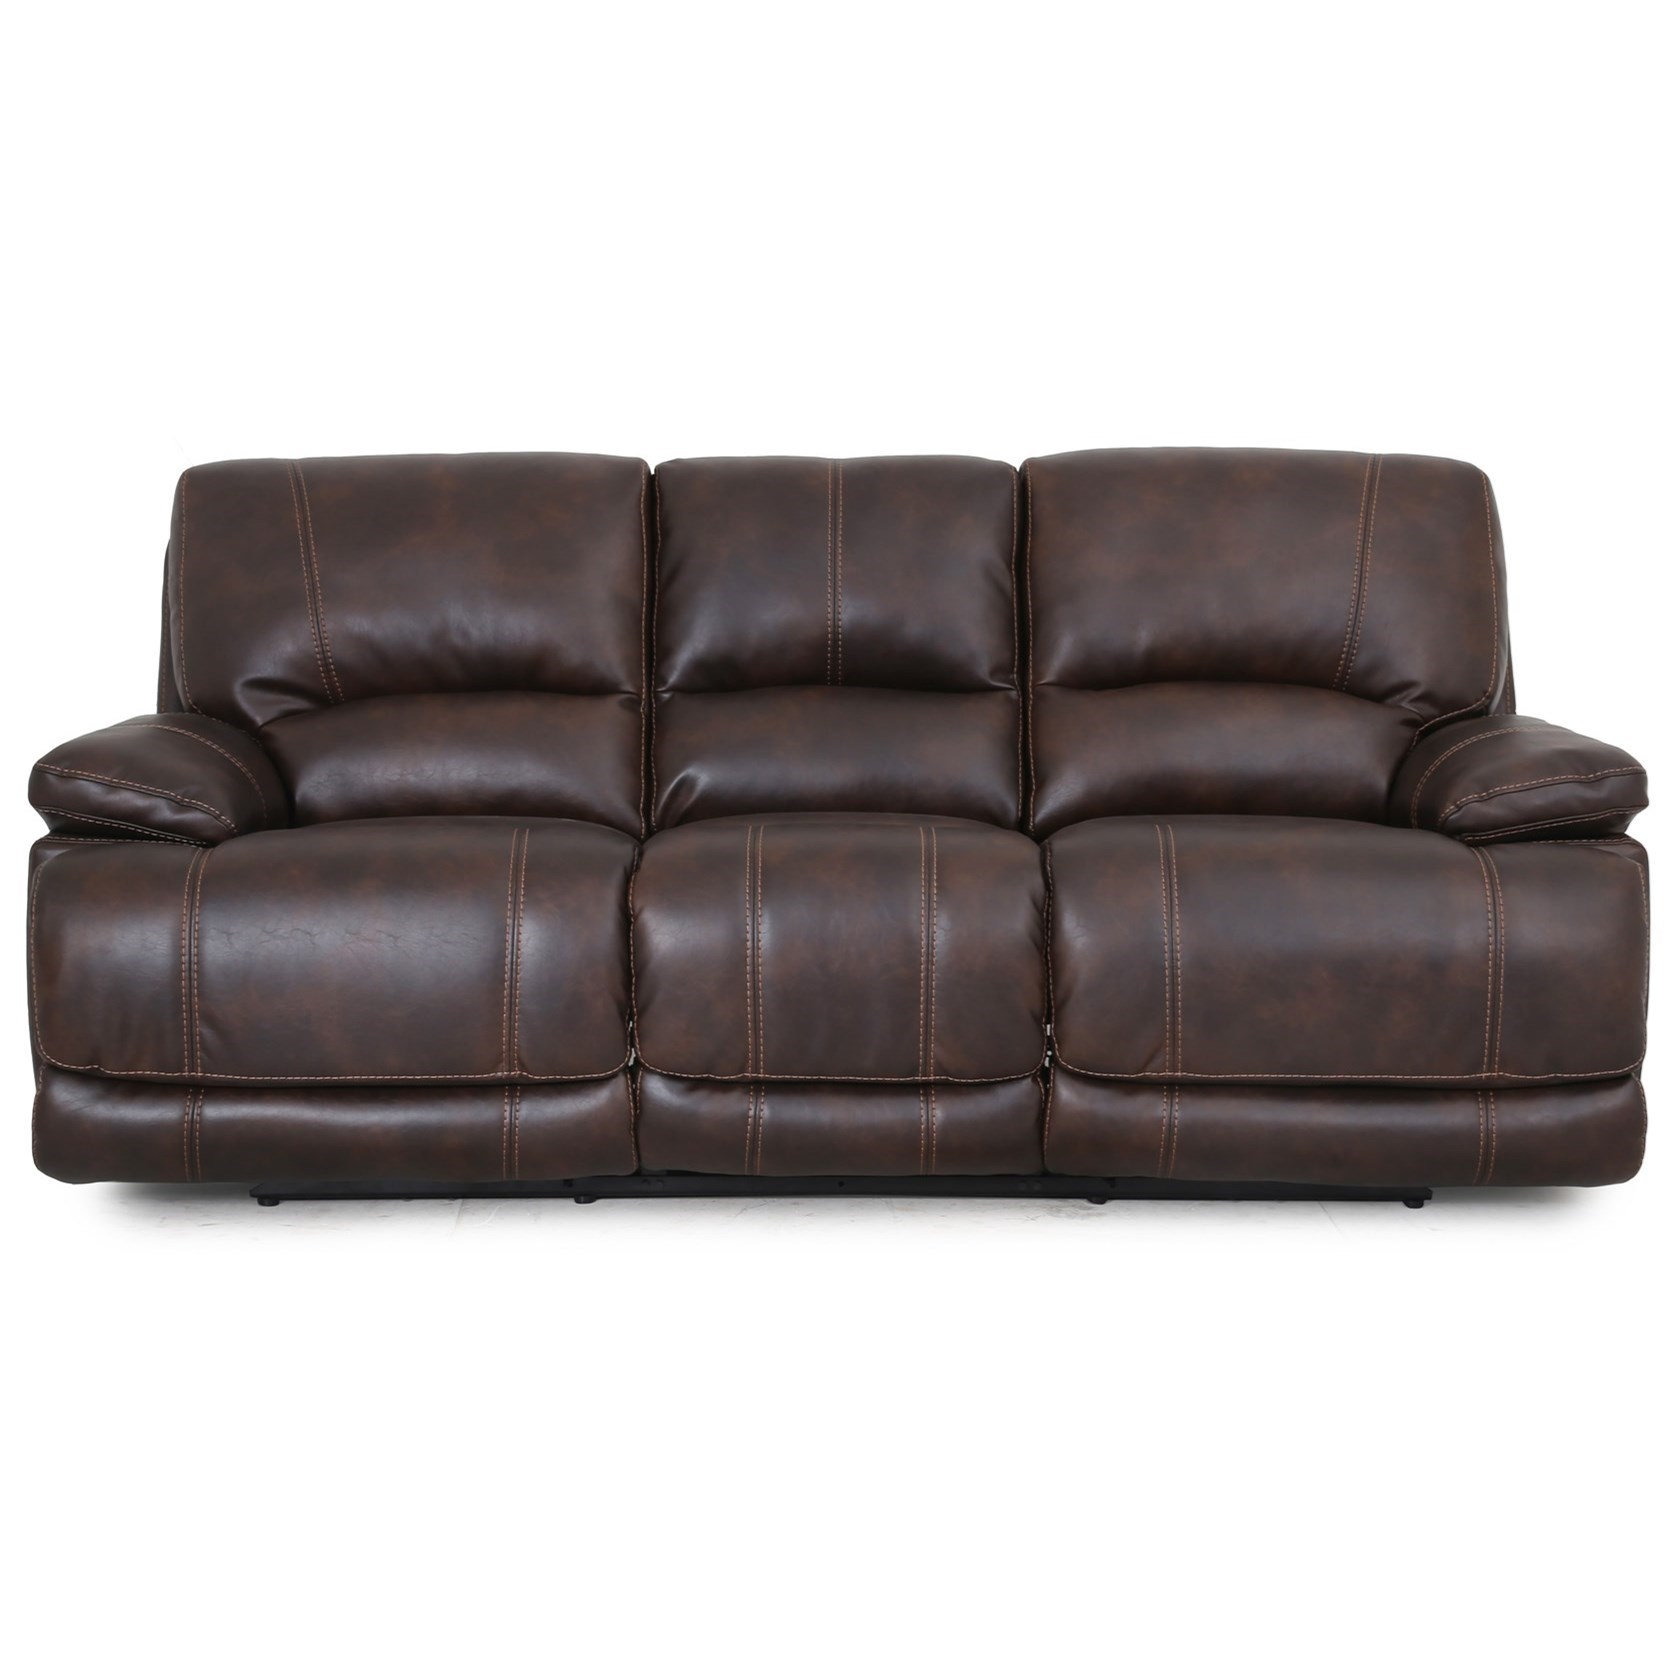 5185 Power Sofa at Pilgrim Furniture City